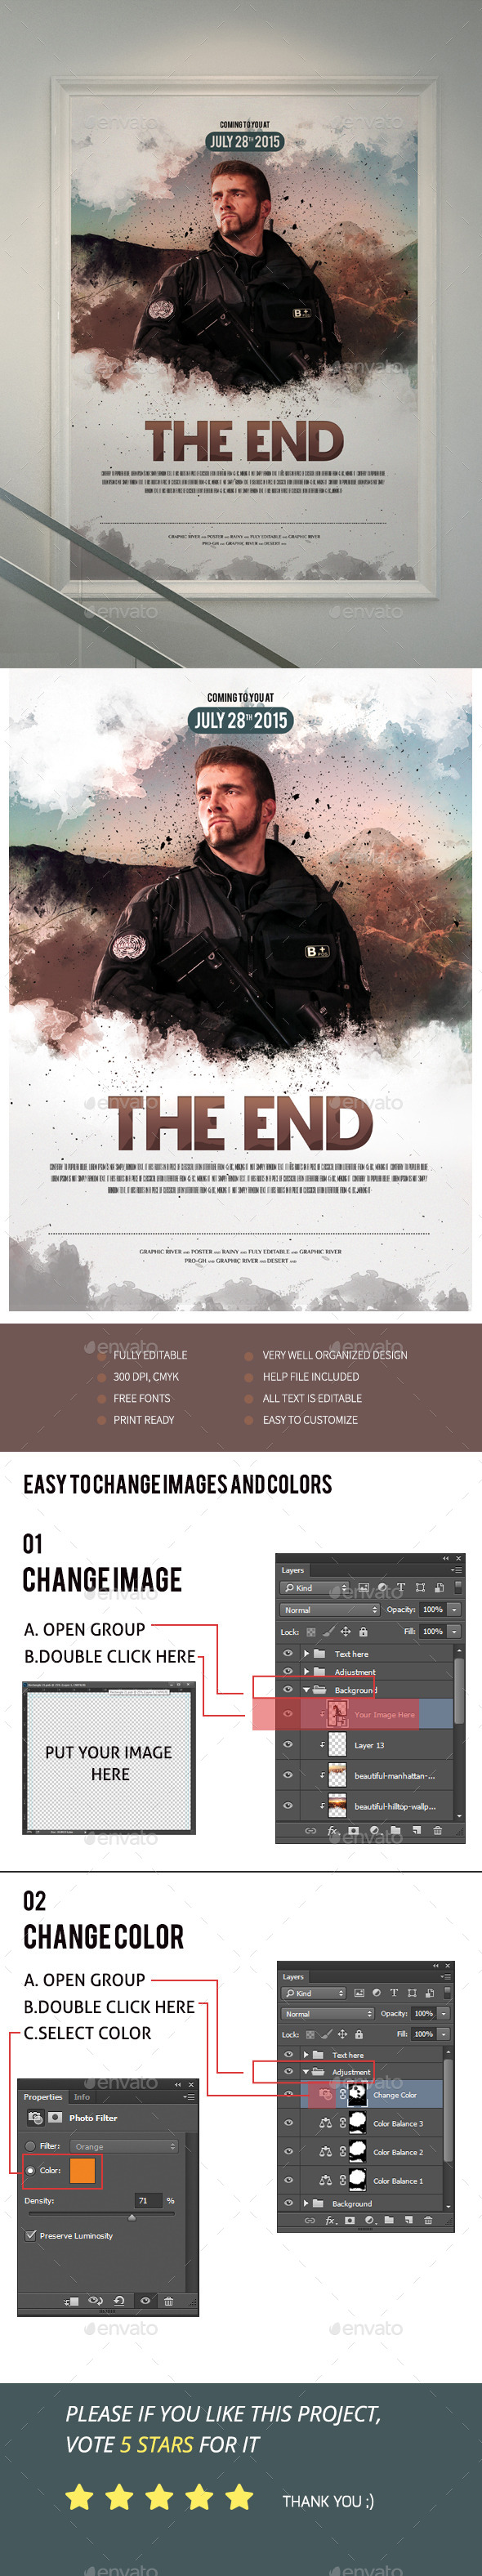 The End Movie Poster Flyer II